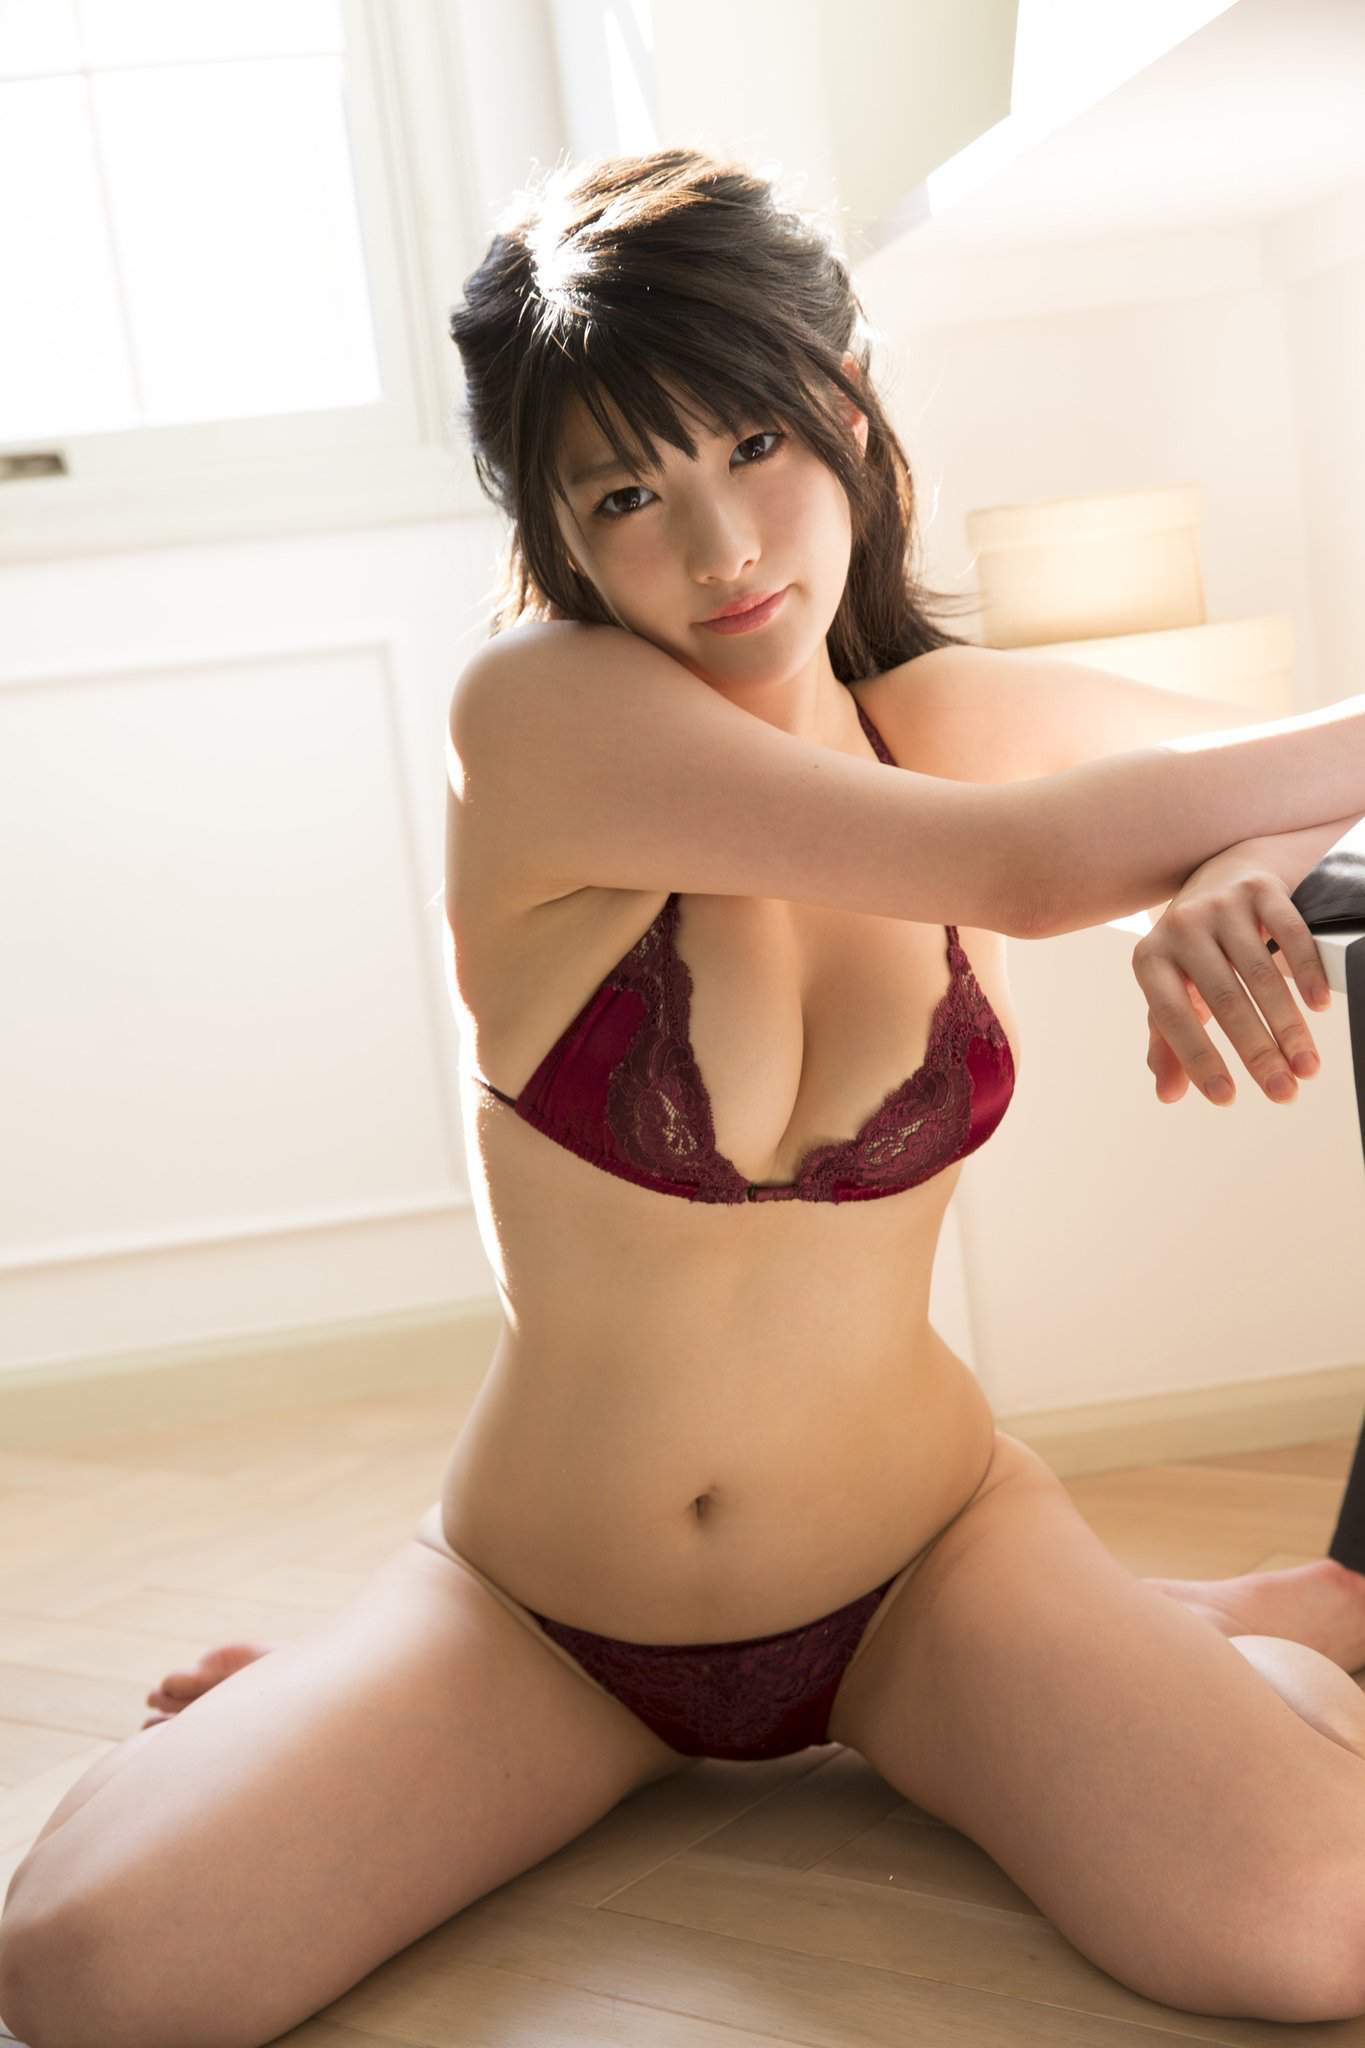 hot pose Asian girl